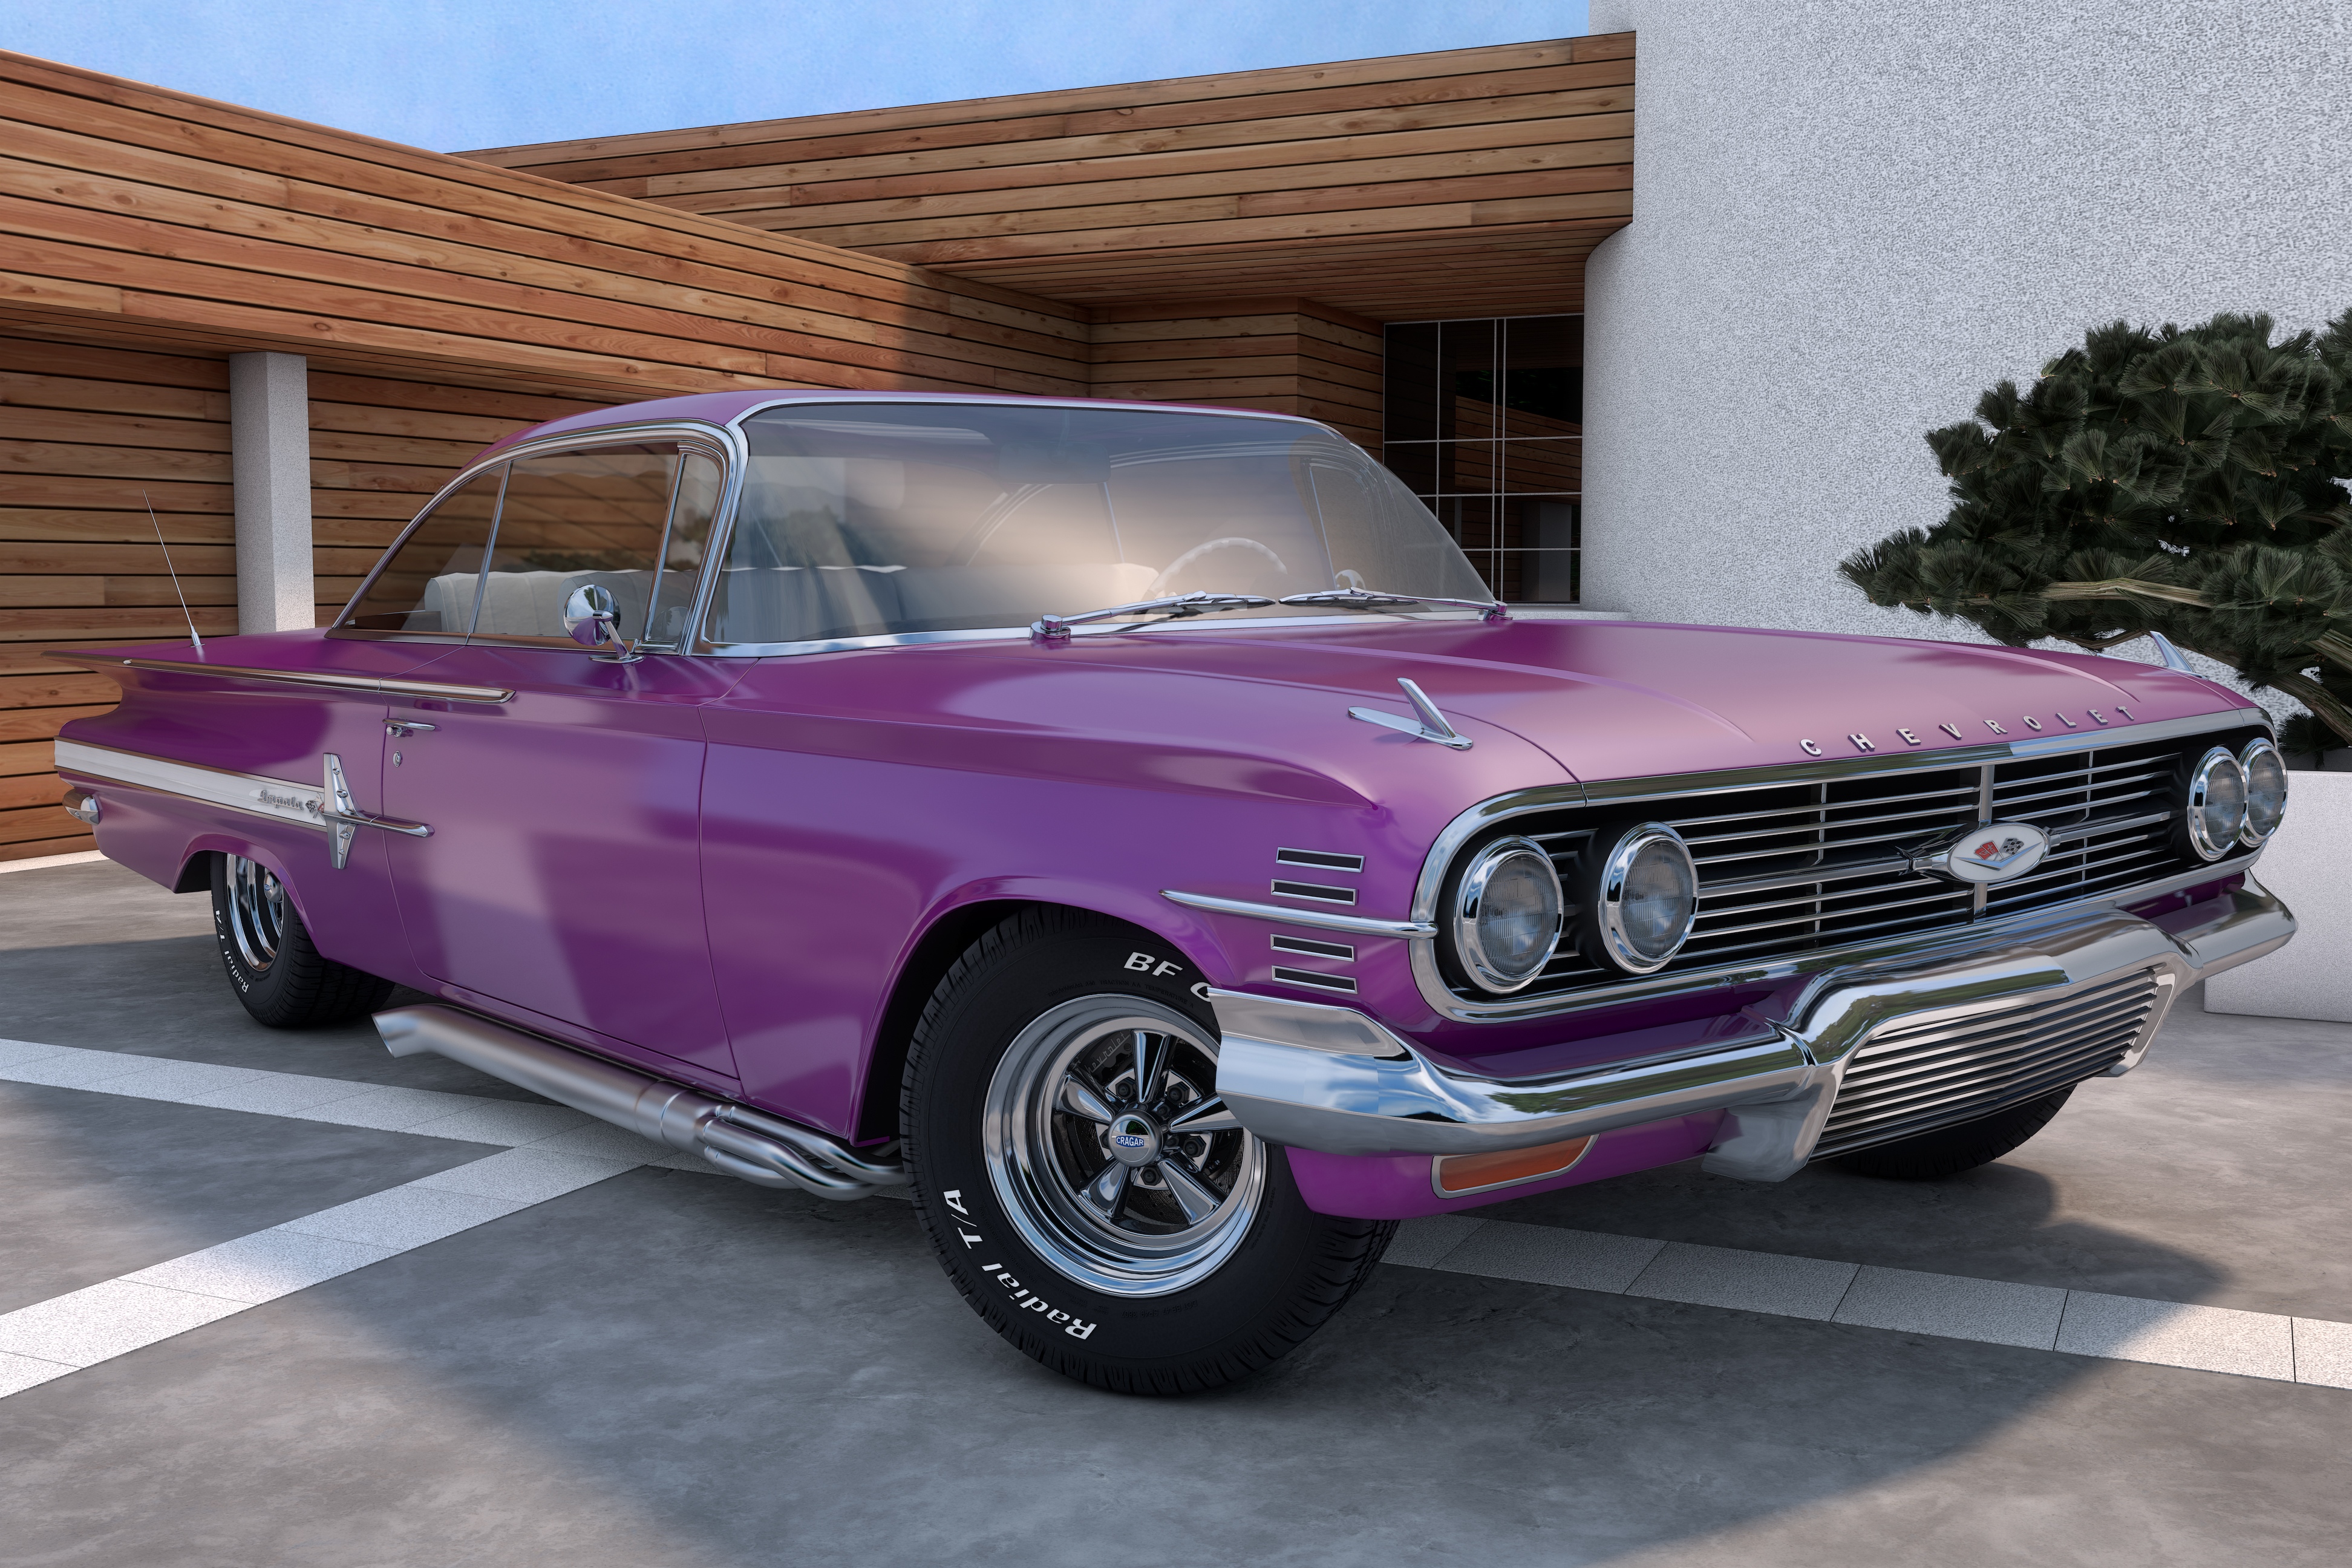 1960 chevrolet impala by samcurry 1960 chevrolet impala by samcurry